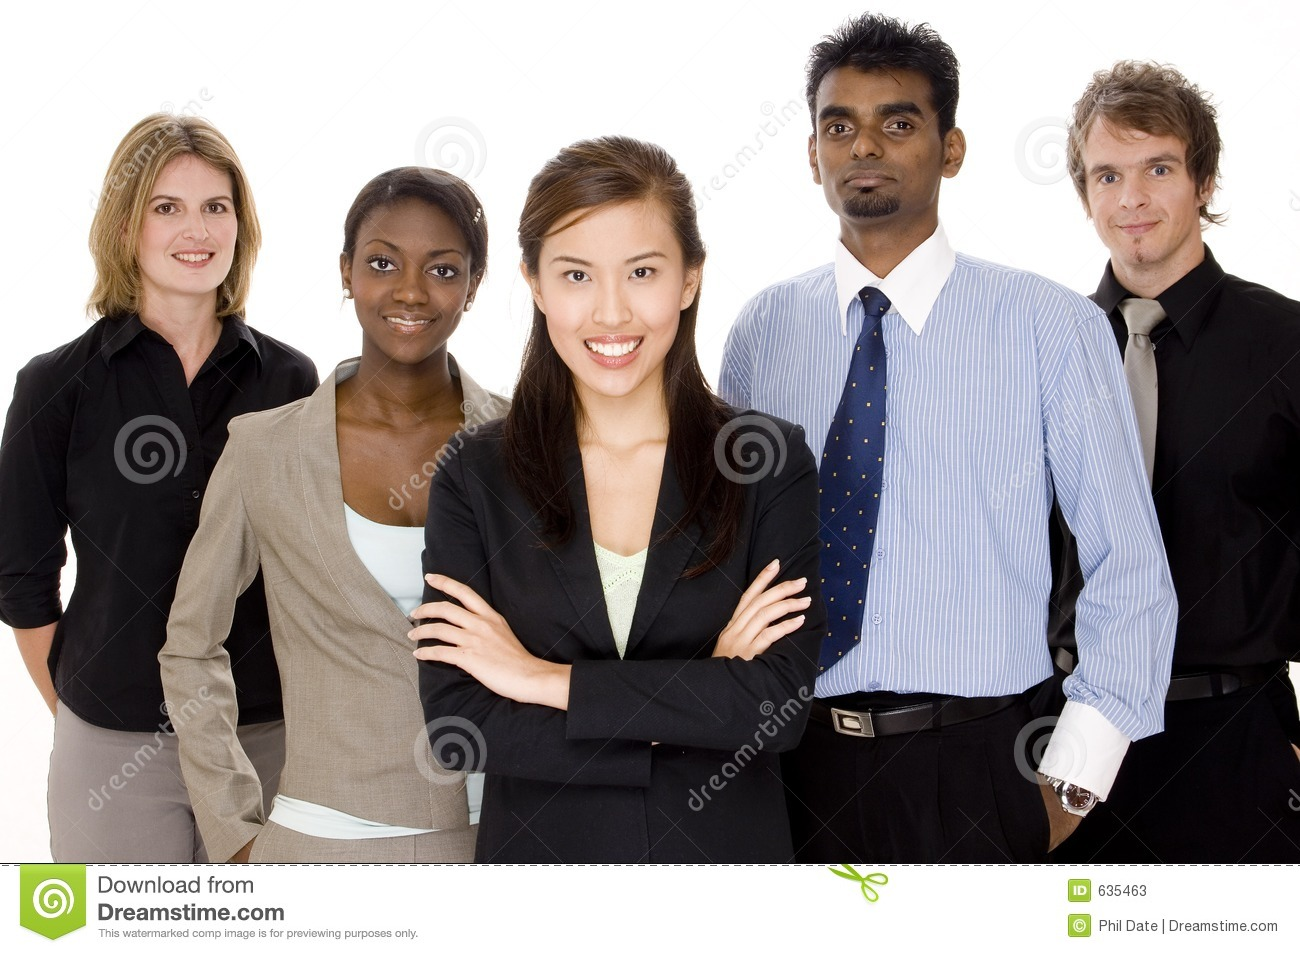 Five people make up a diverse business team. Business Meeting Handshake